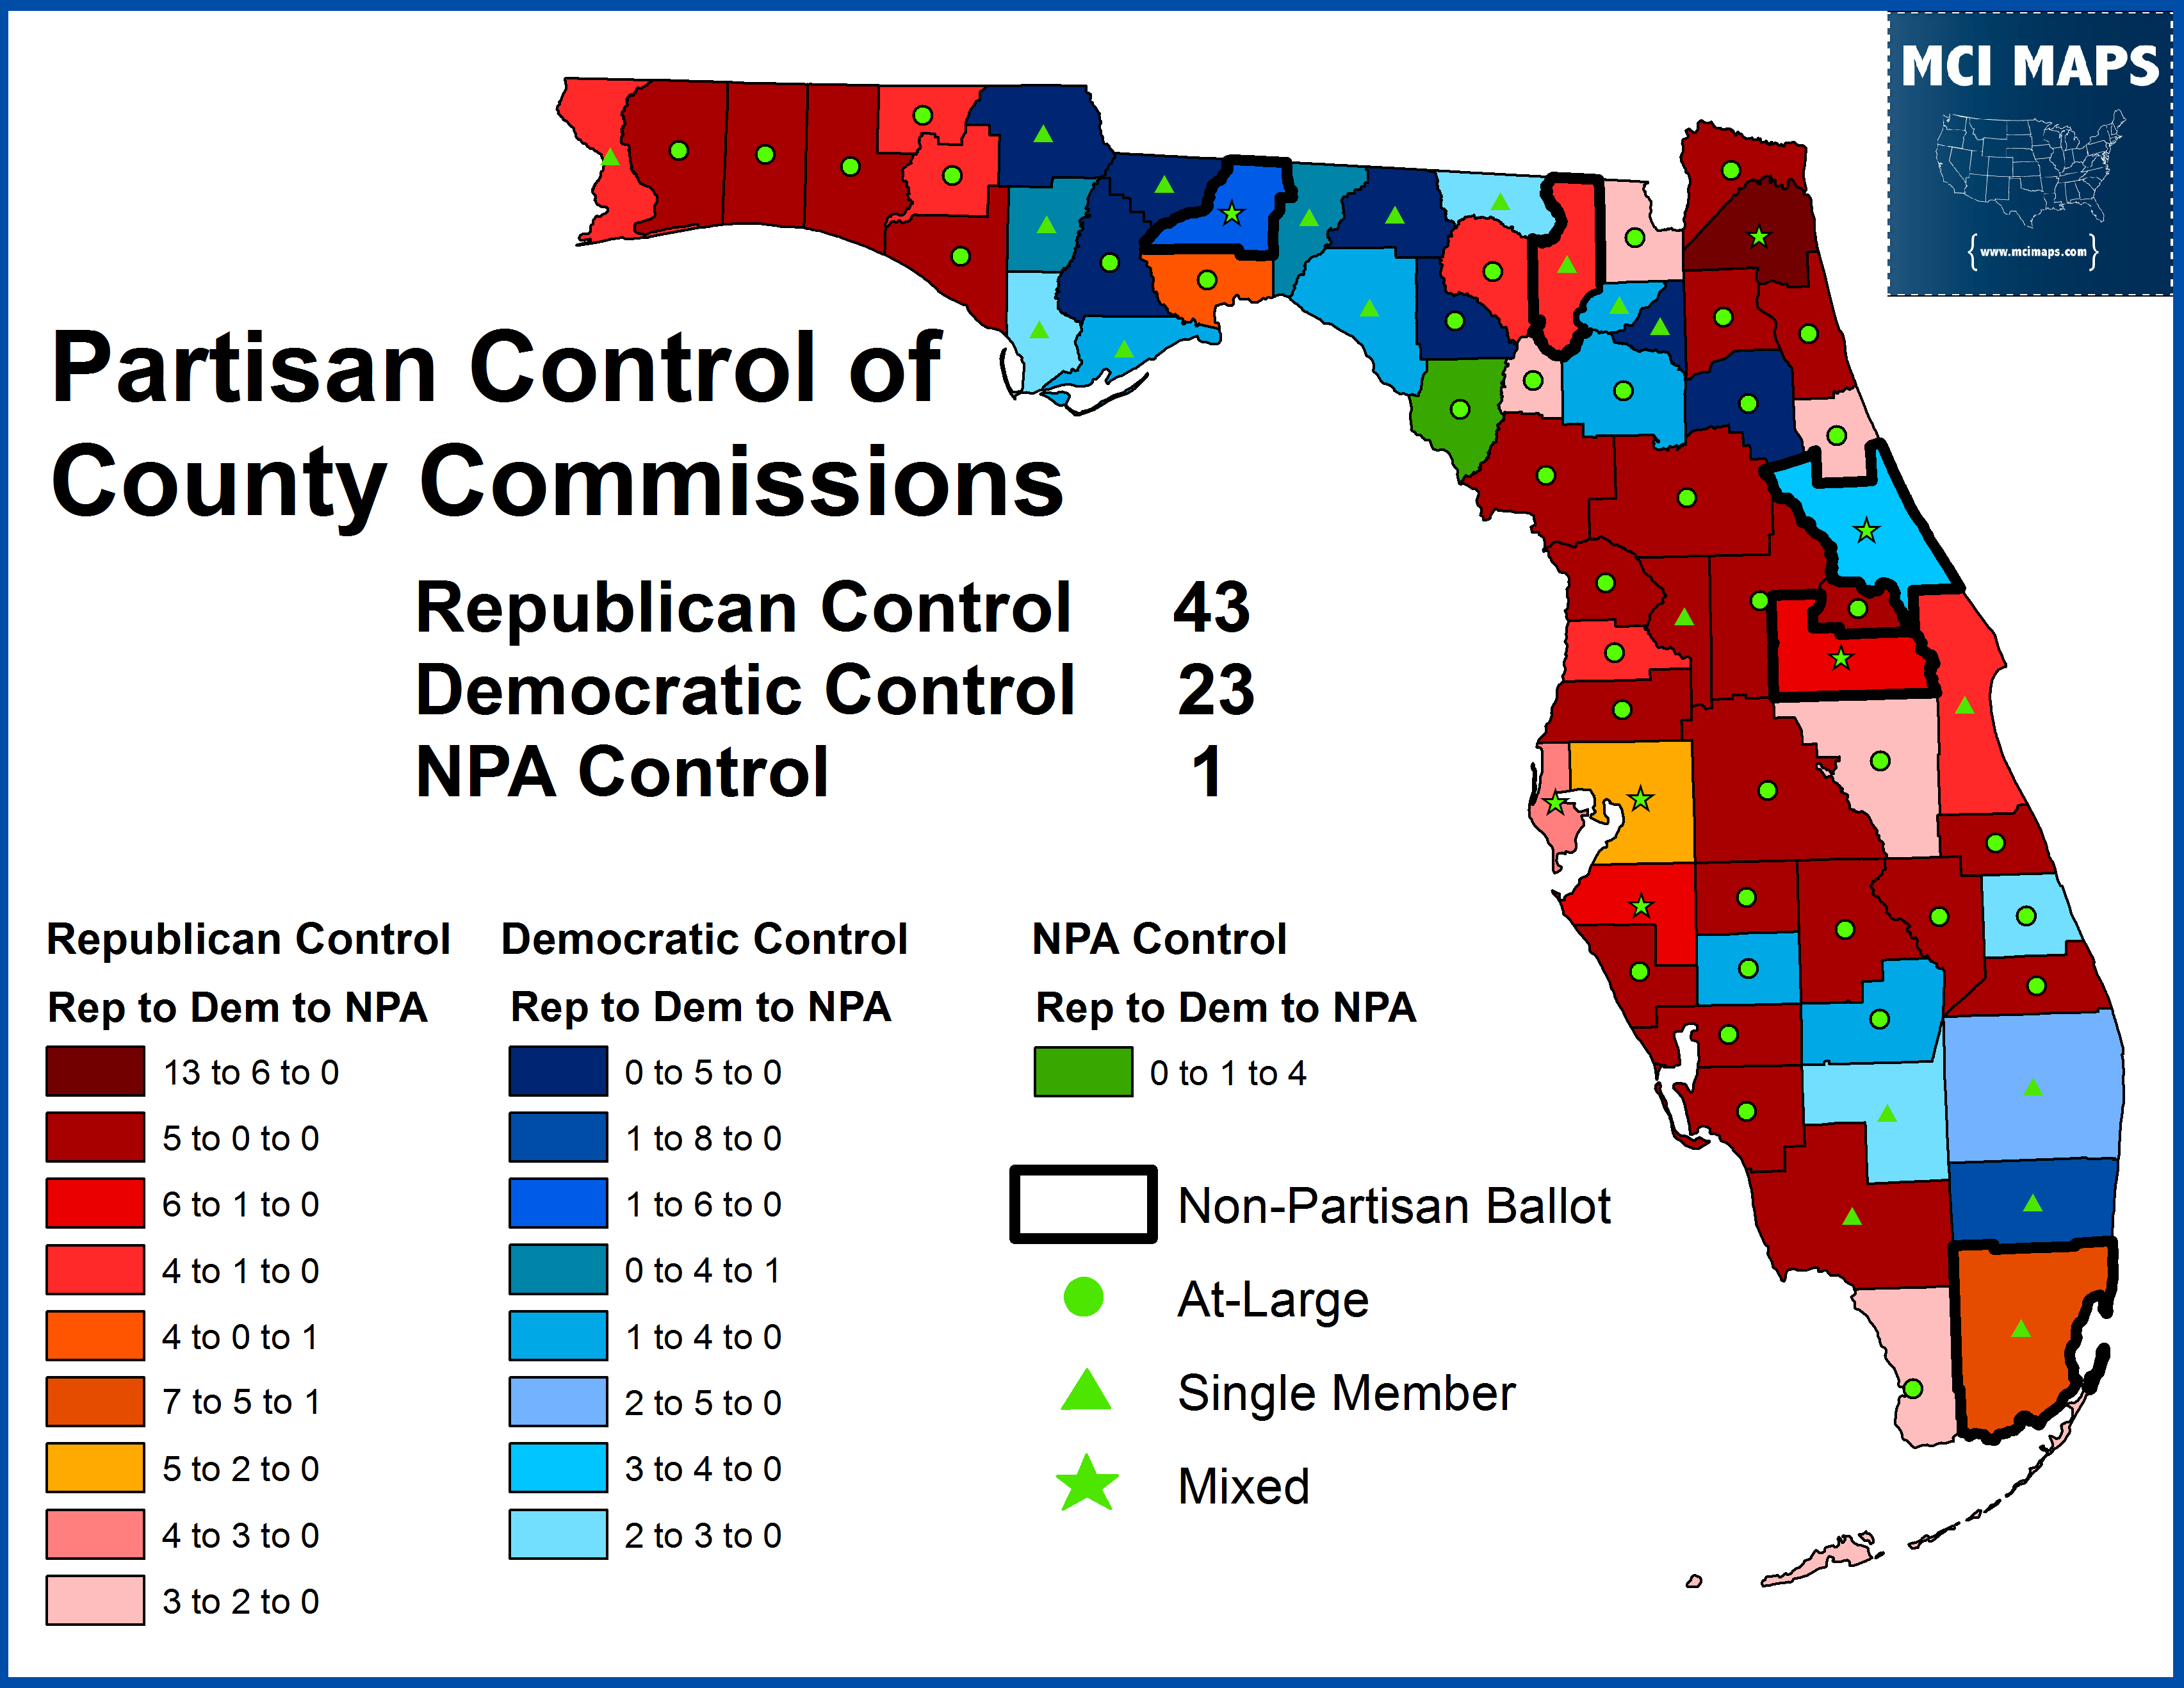 How Florida Democrats Fared In 2014u2032s Local Elections U2013 MCI Maps